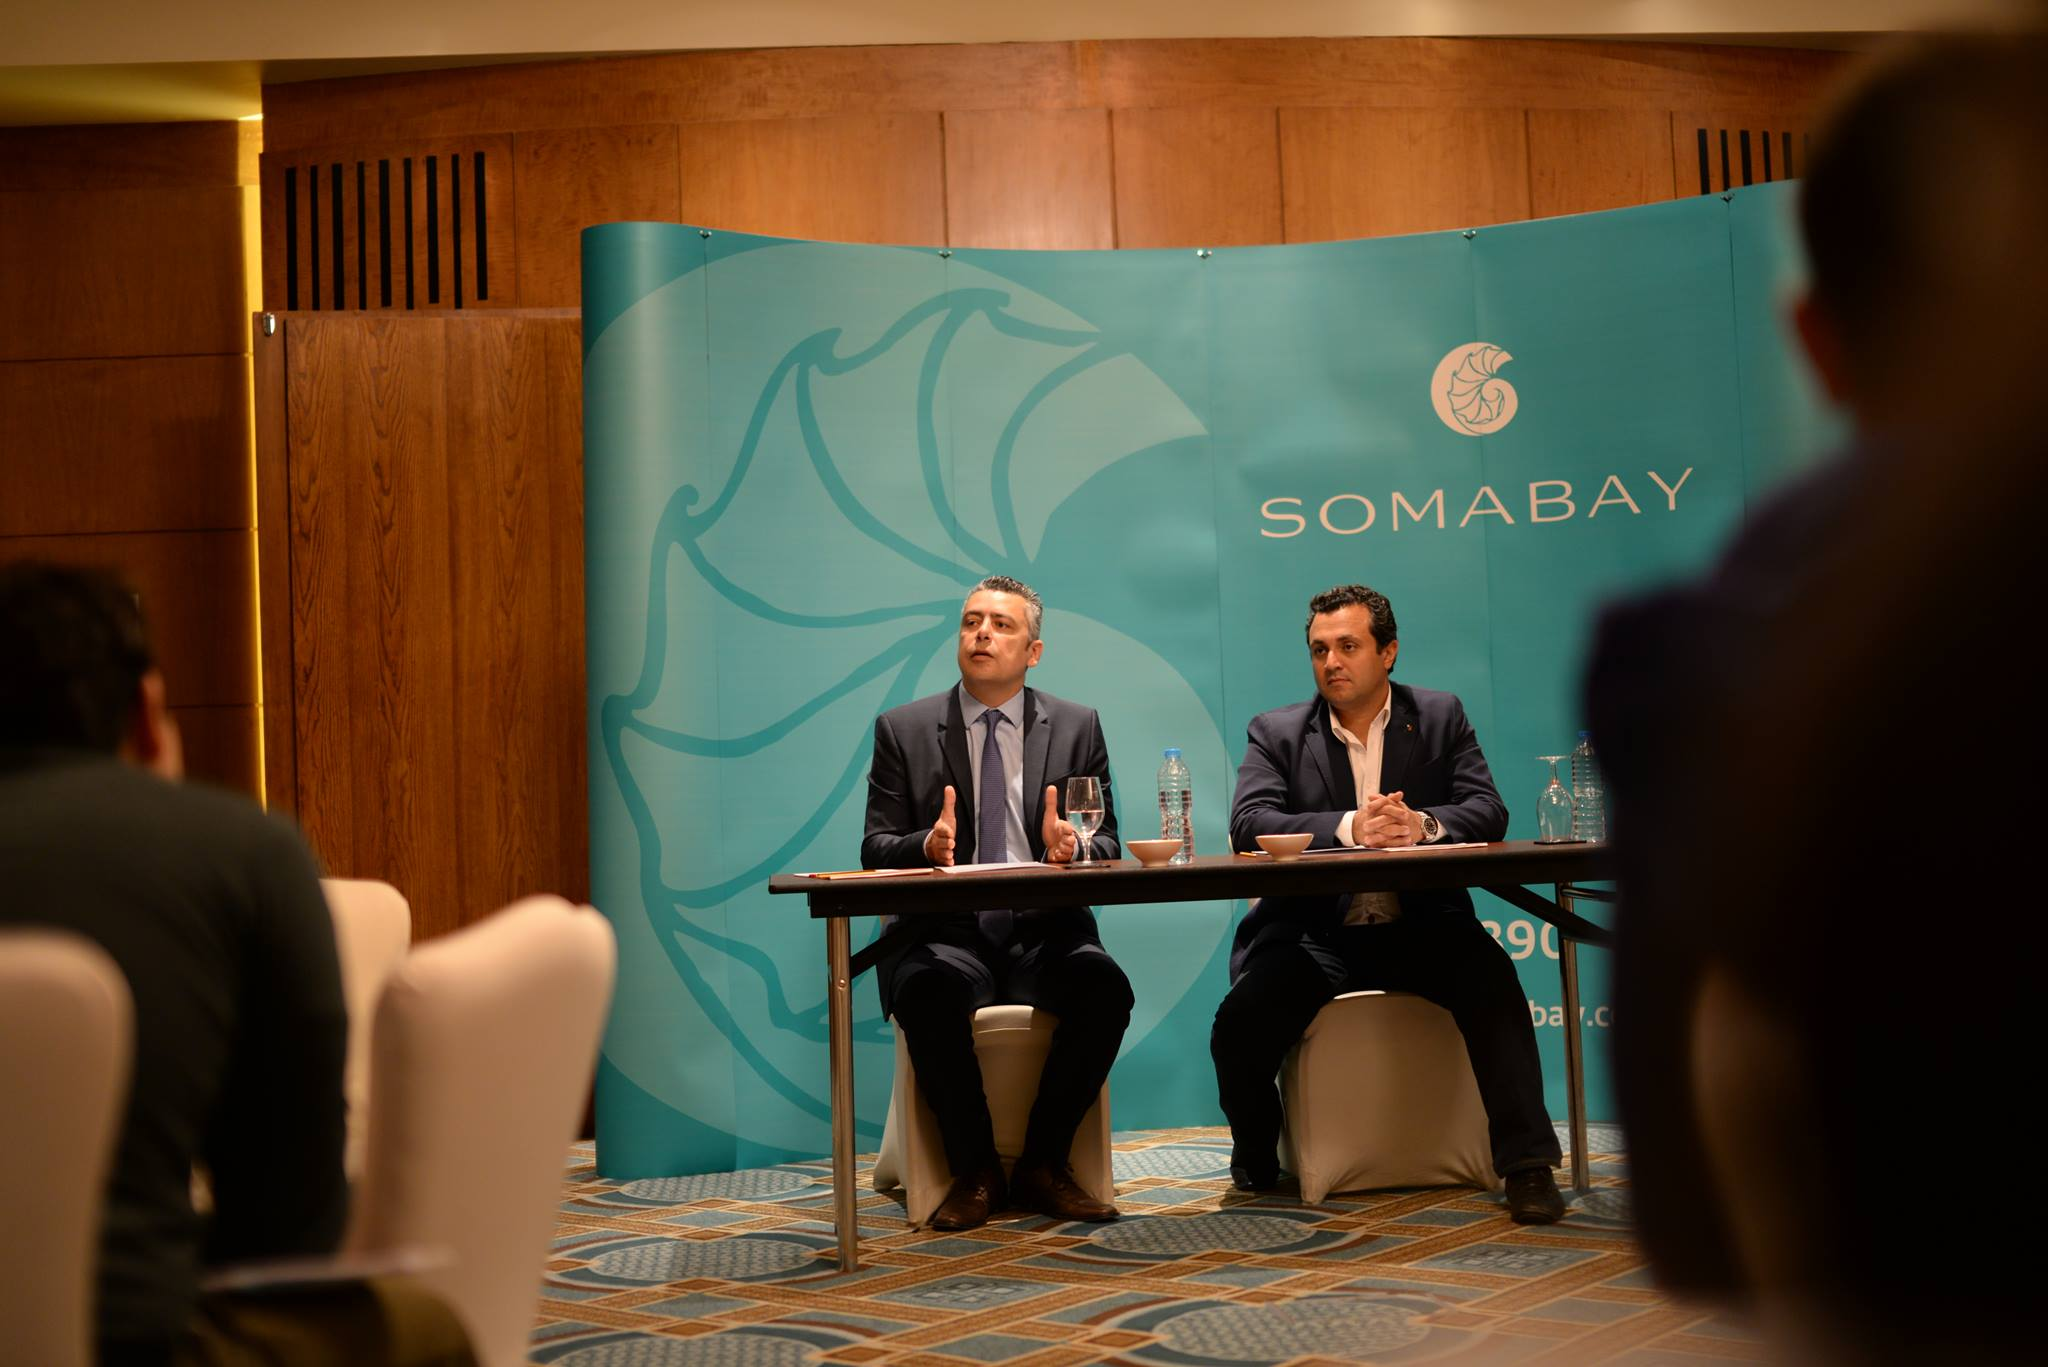 Khaled Mostafa and Ibrahim El Missiri at a roundtable announcing the launch of Global EEE in Egypt